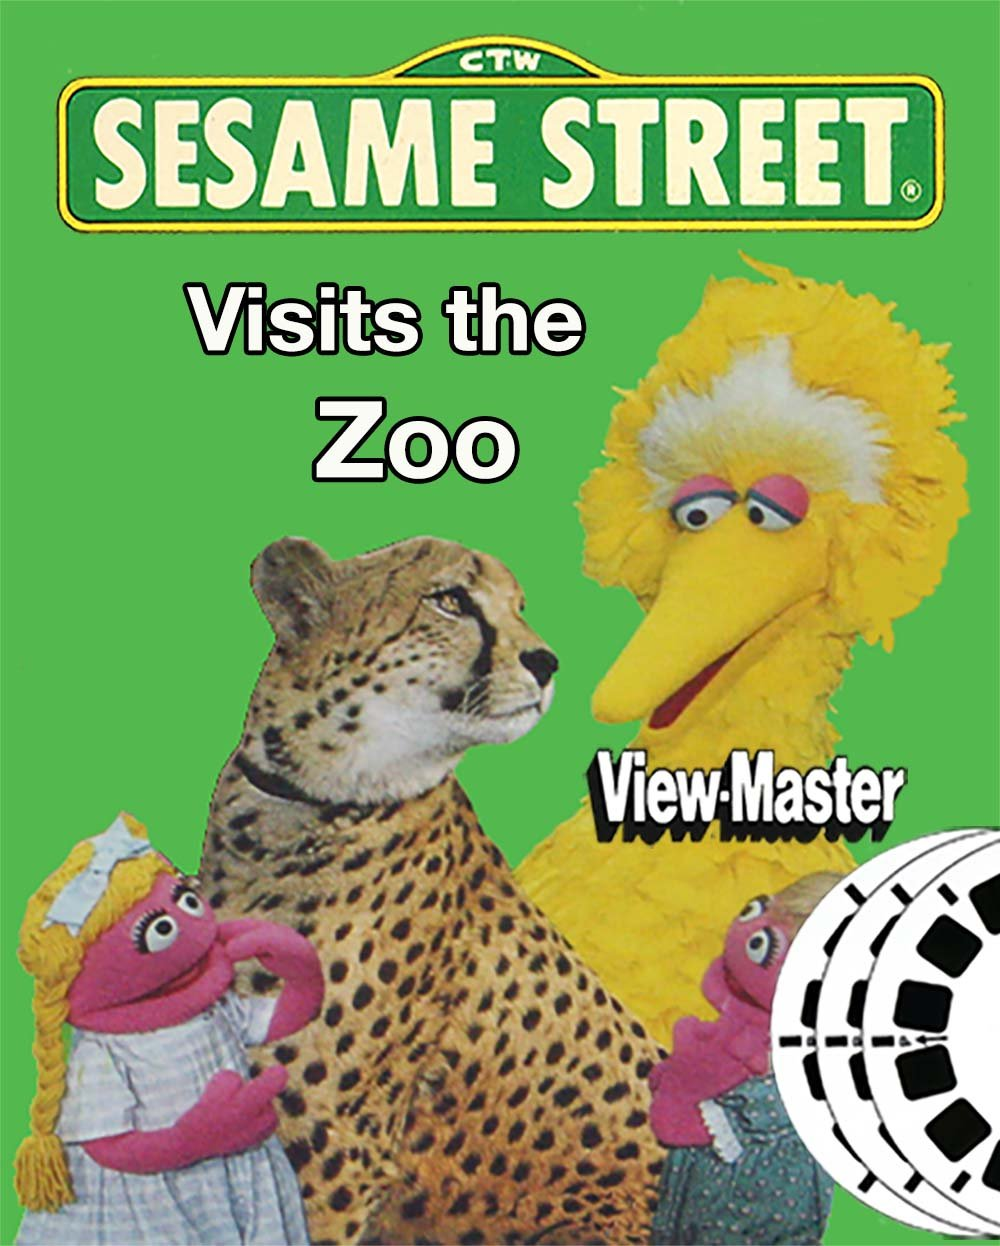 Sesame Visits the Zoo - Classic ViewMaster 3 Reel Set - 21 3D Images - Ernie, Big Bird by 3Dstereo ViewMaster (Image #1)